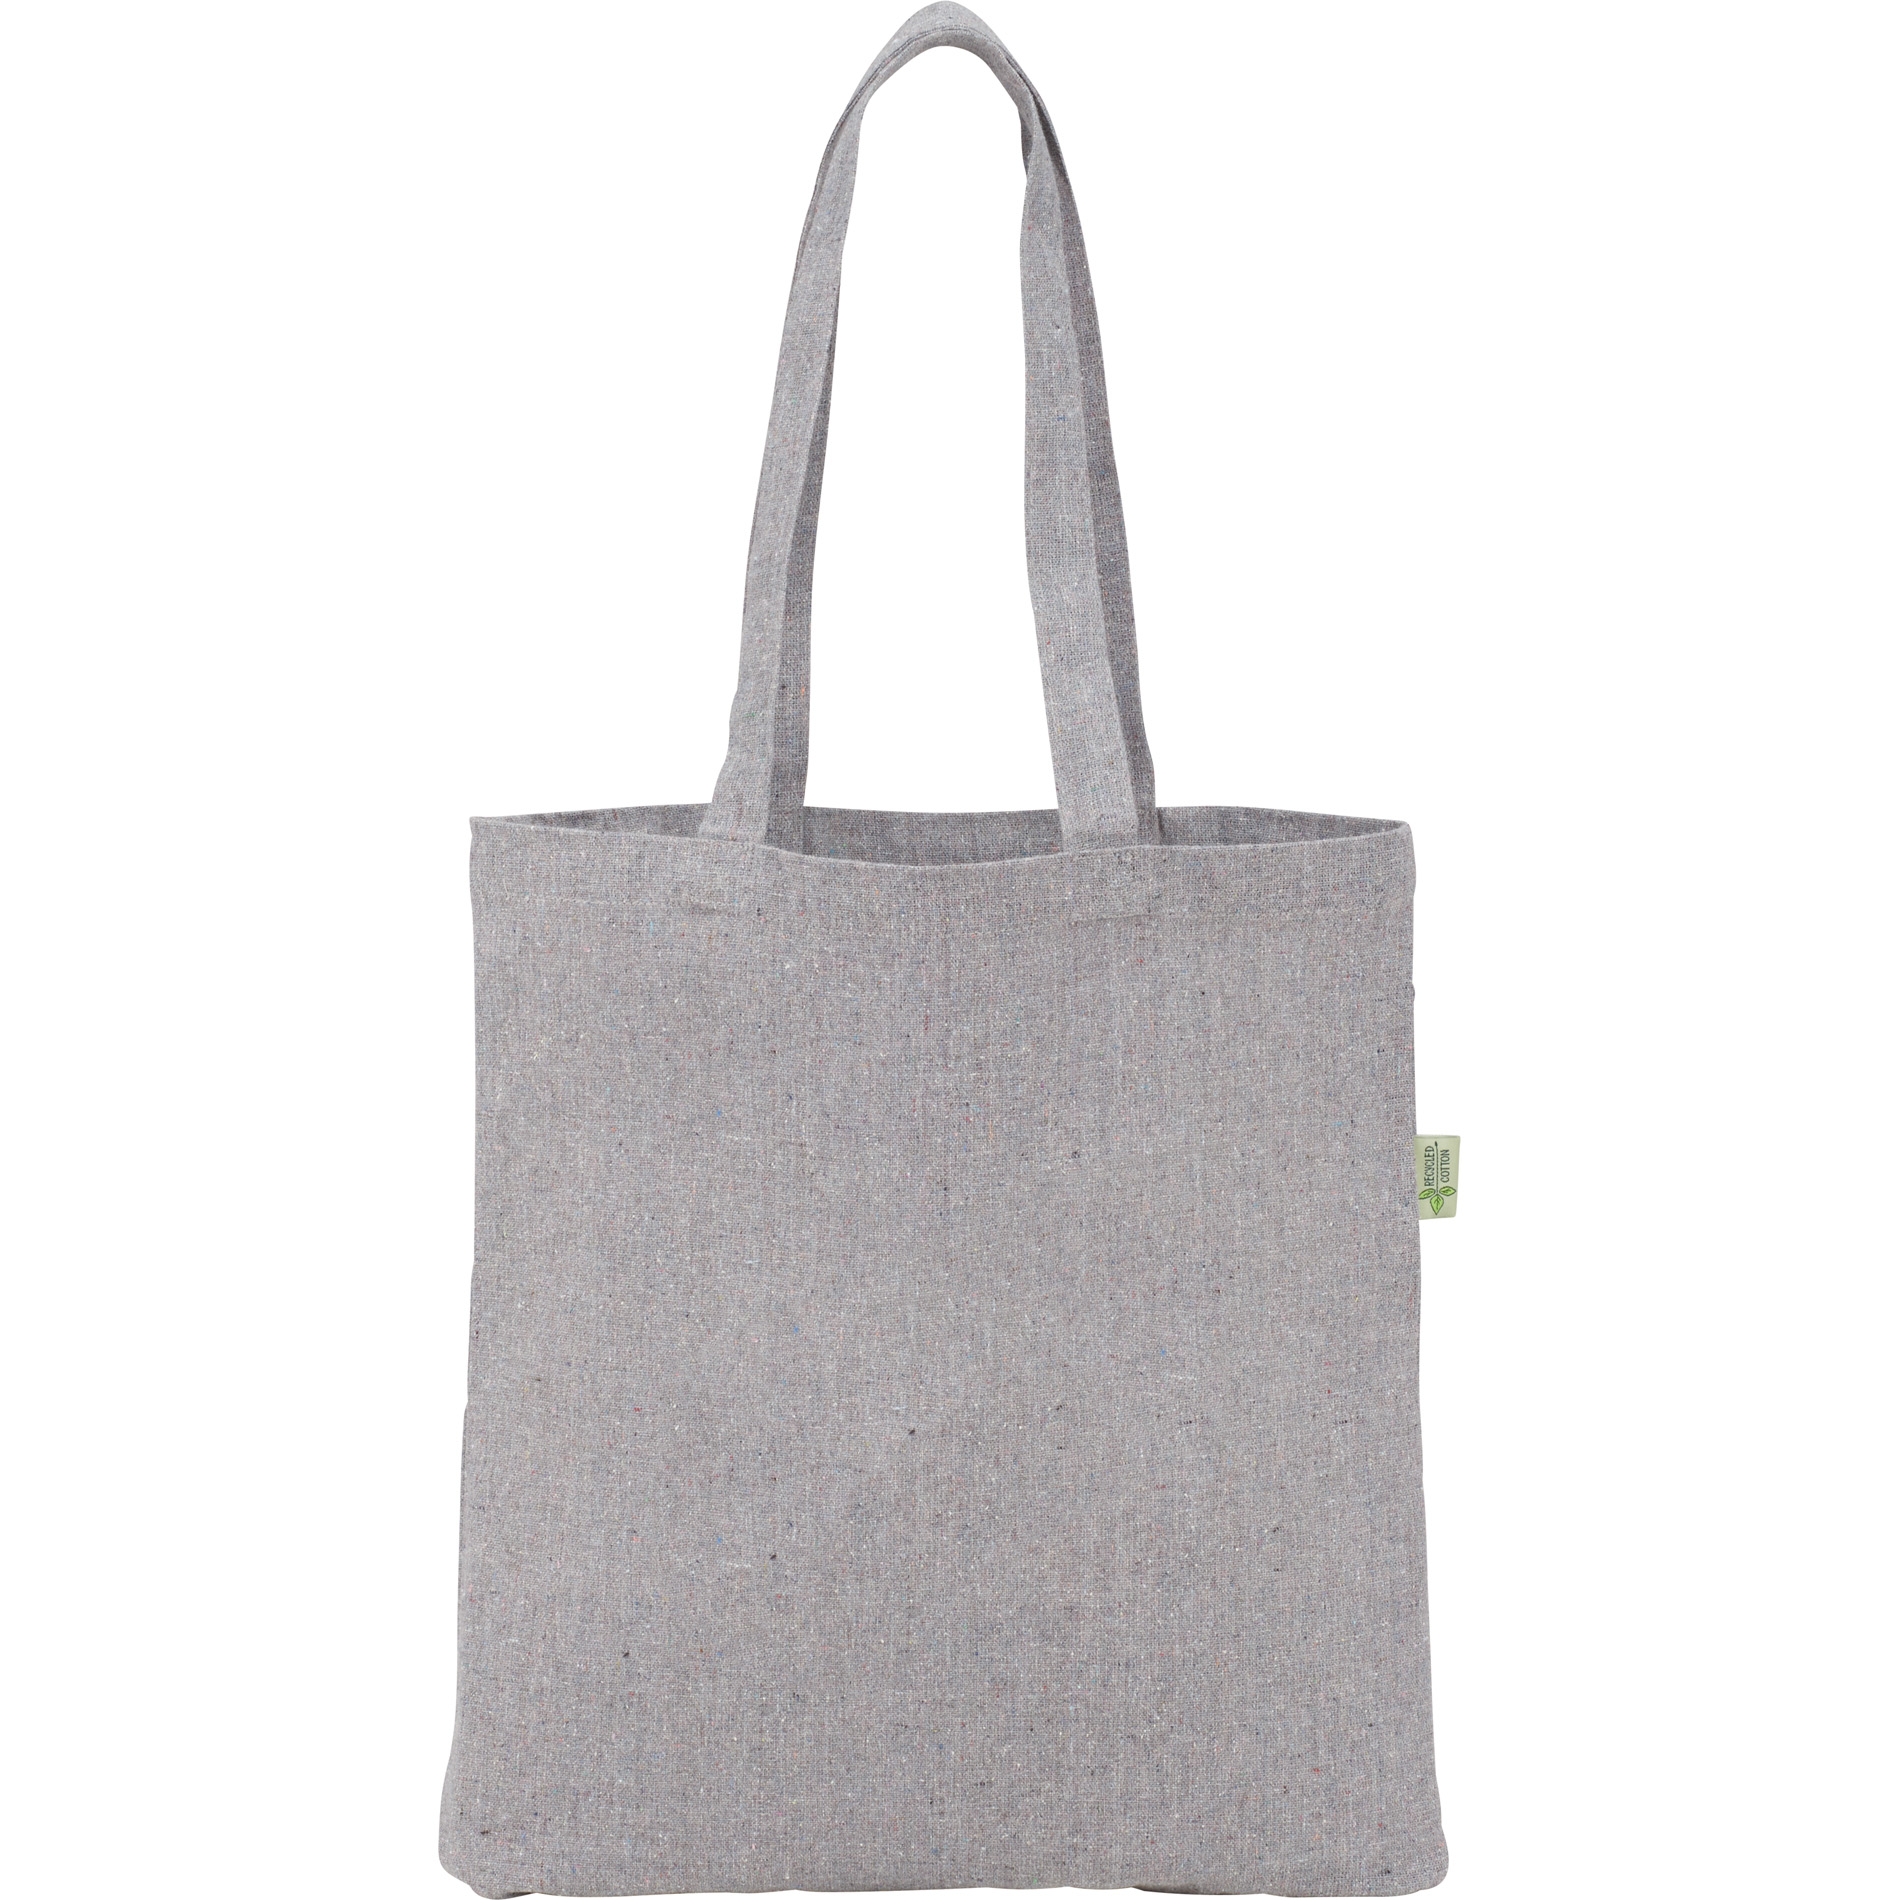 LEEDS 7901-06 - Recycled Cotton Convention Tote